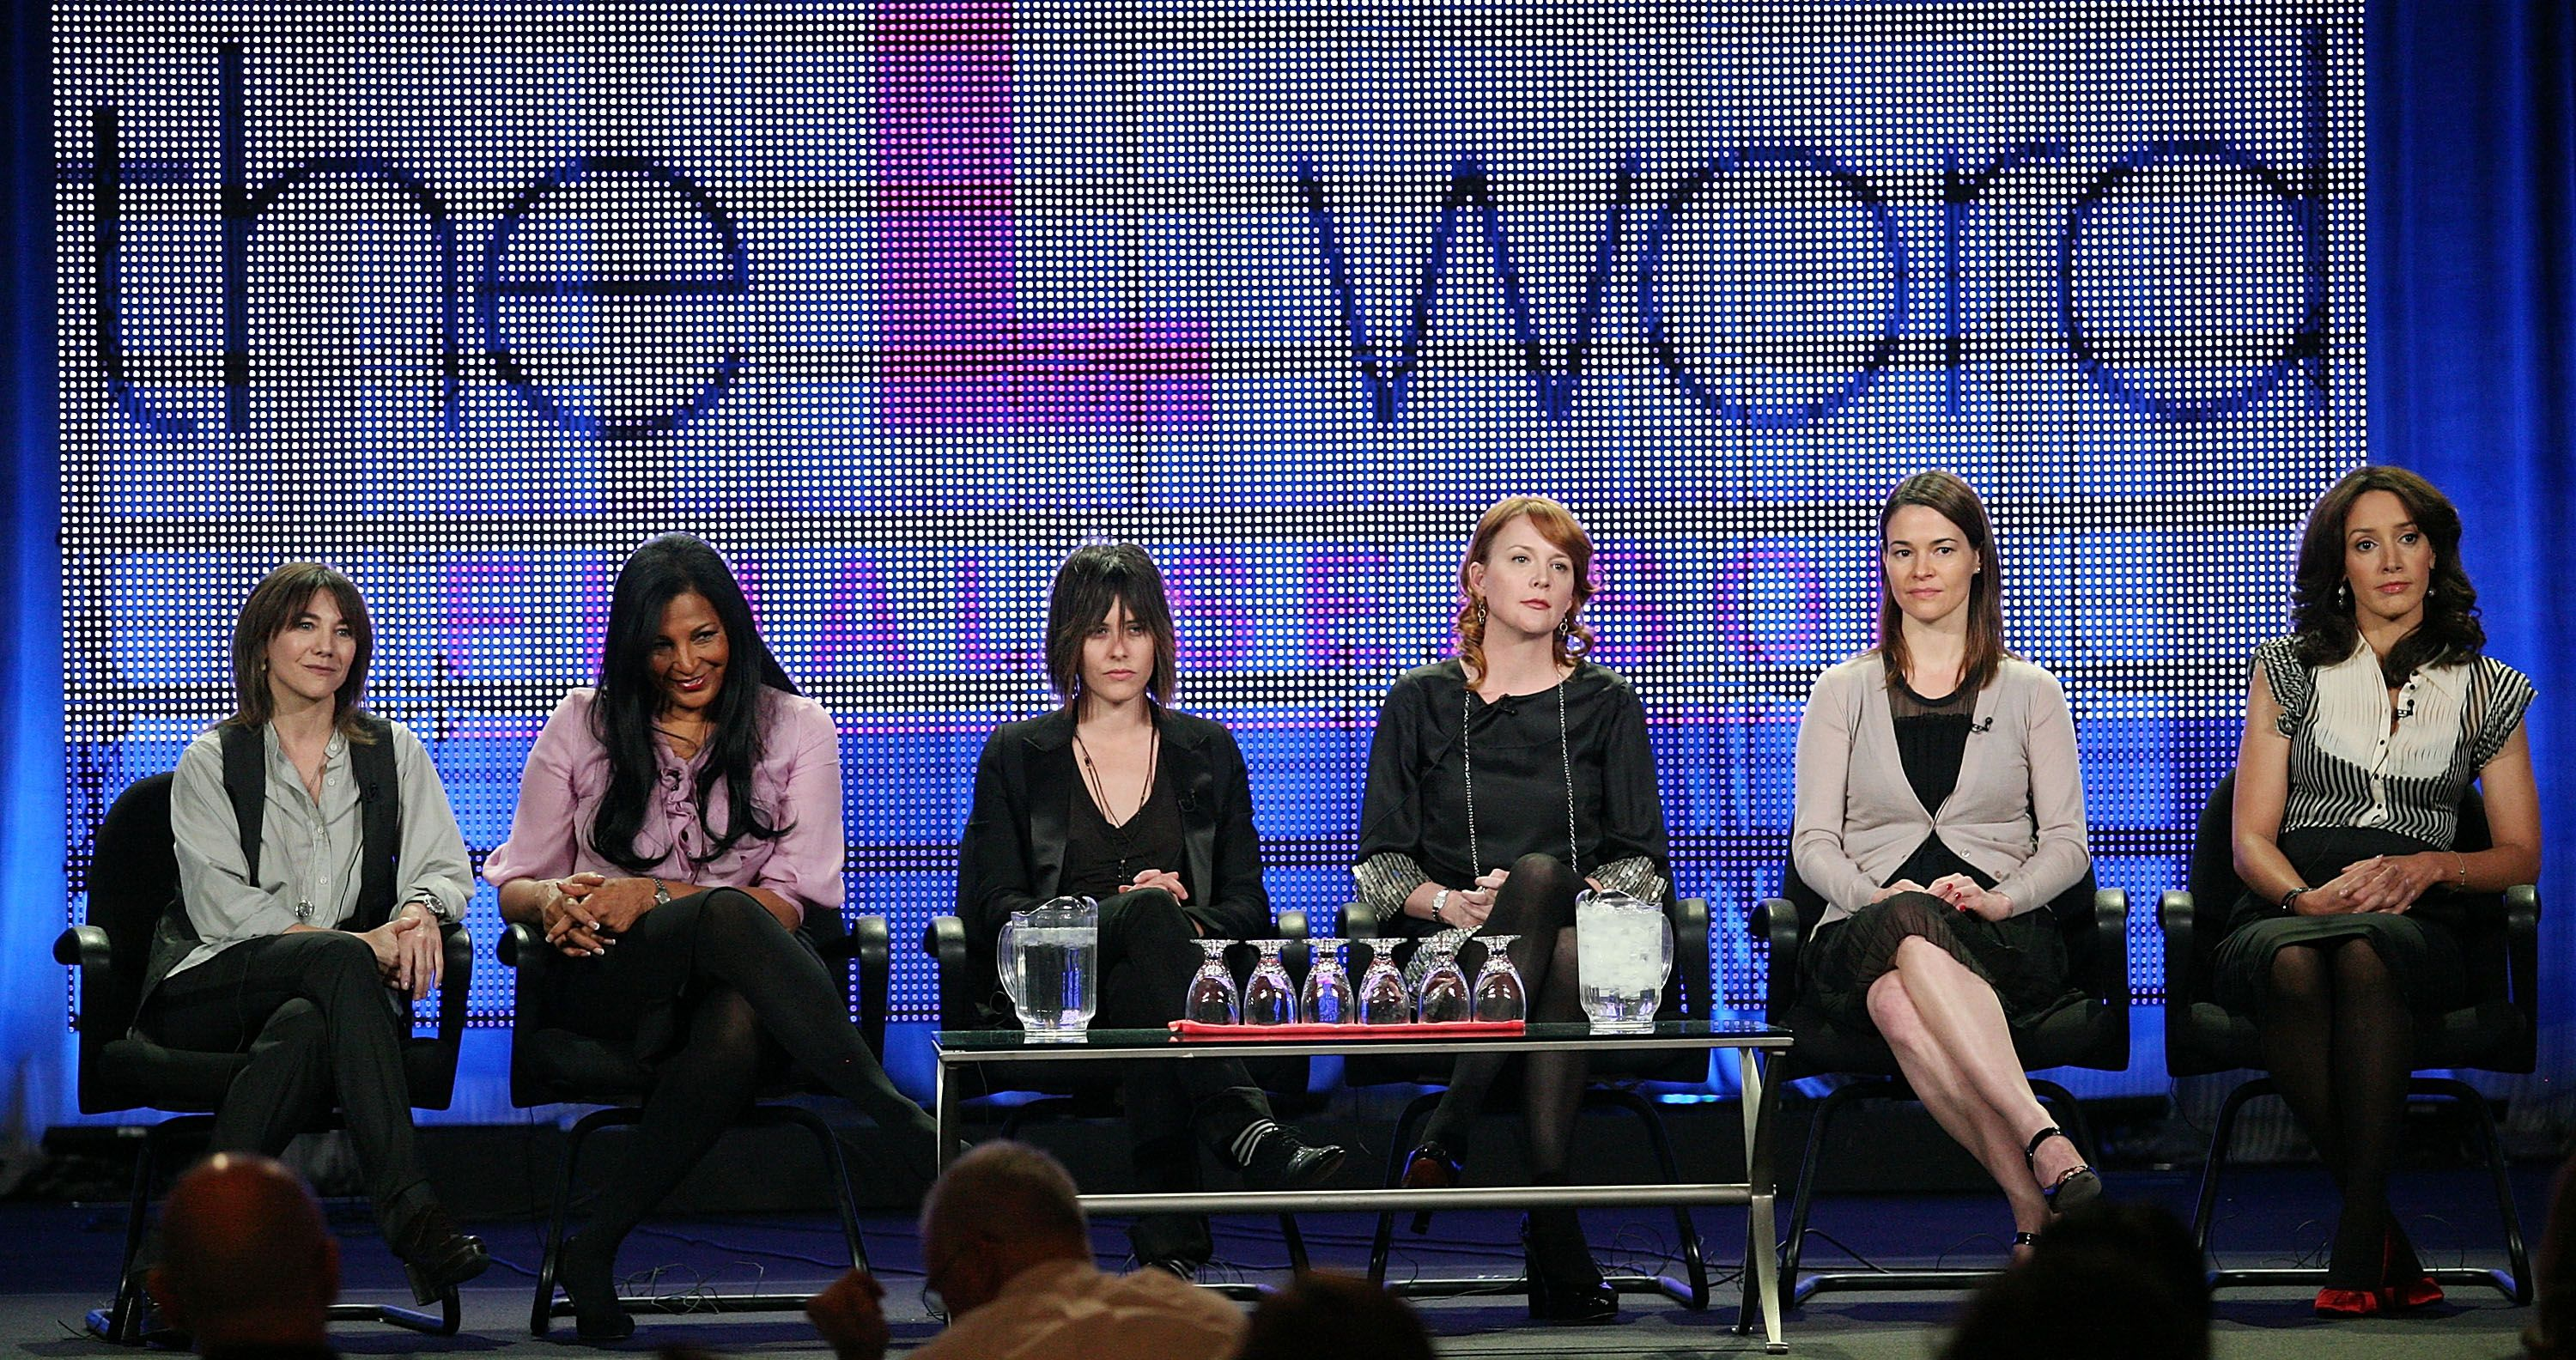 Sarah Shahi Is Ready to Be in Showtime's 'L Word' Sequel